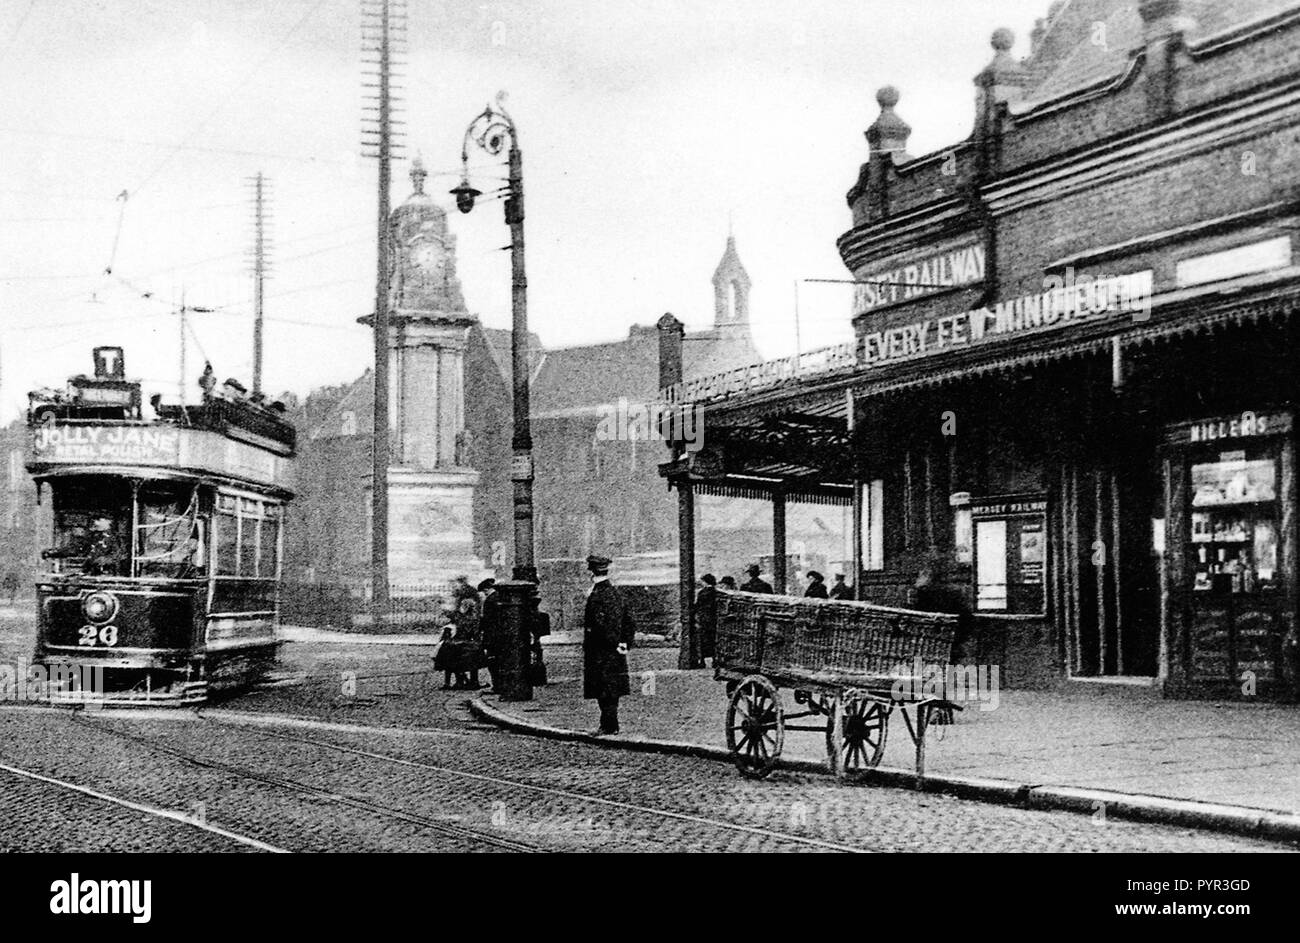 Central Railway Station, Birkenhead early 1900's - Stock Image